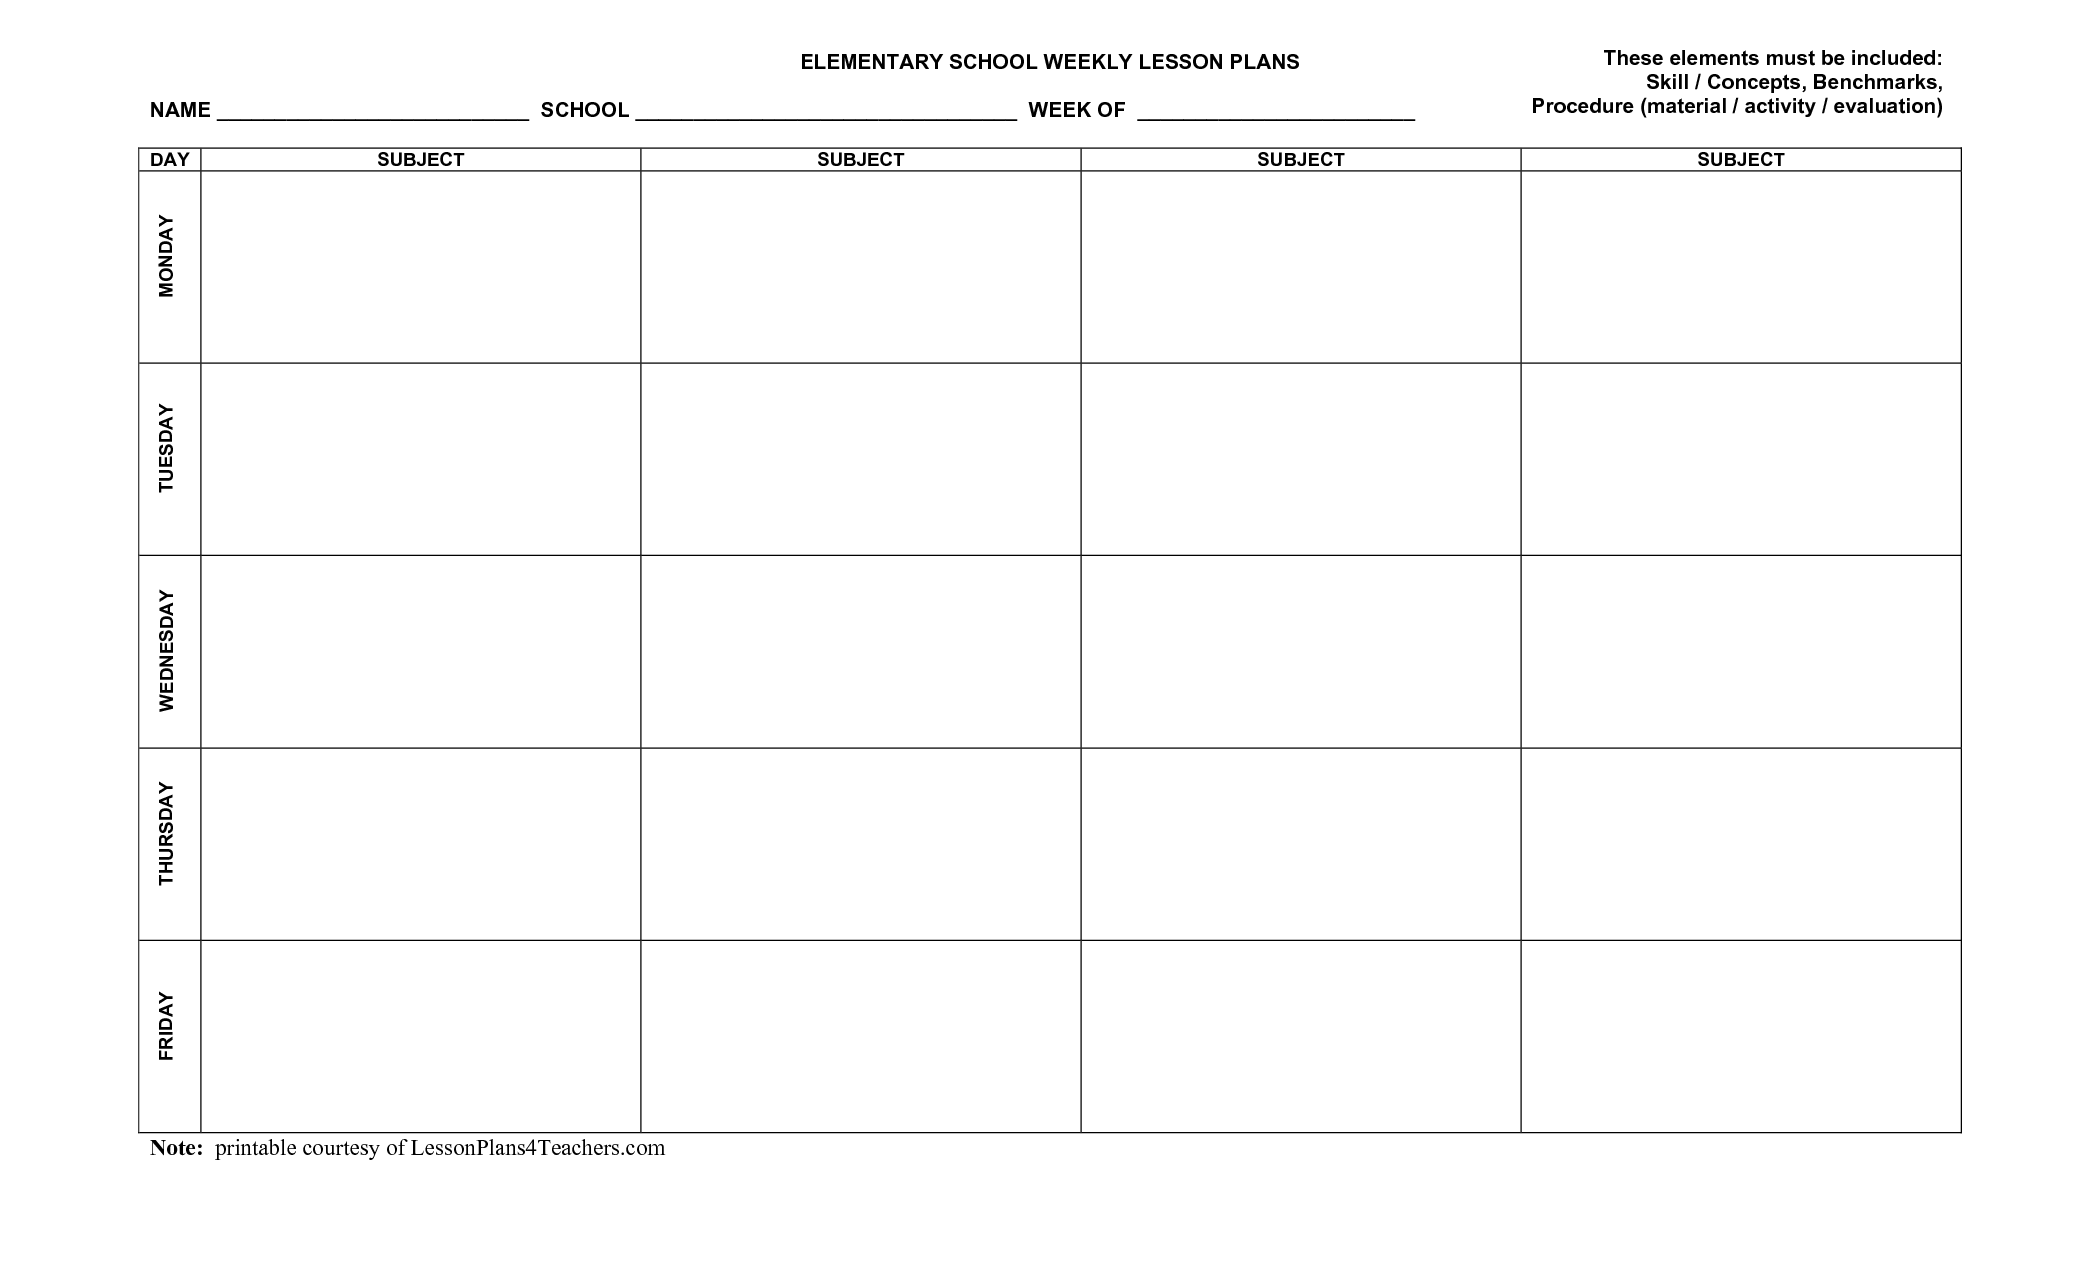 Blank weekly lesson plan templates mqfotfas teaching for Free lesson plan templates for elementary teachers